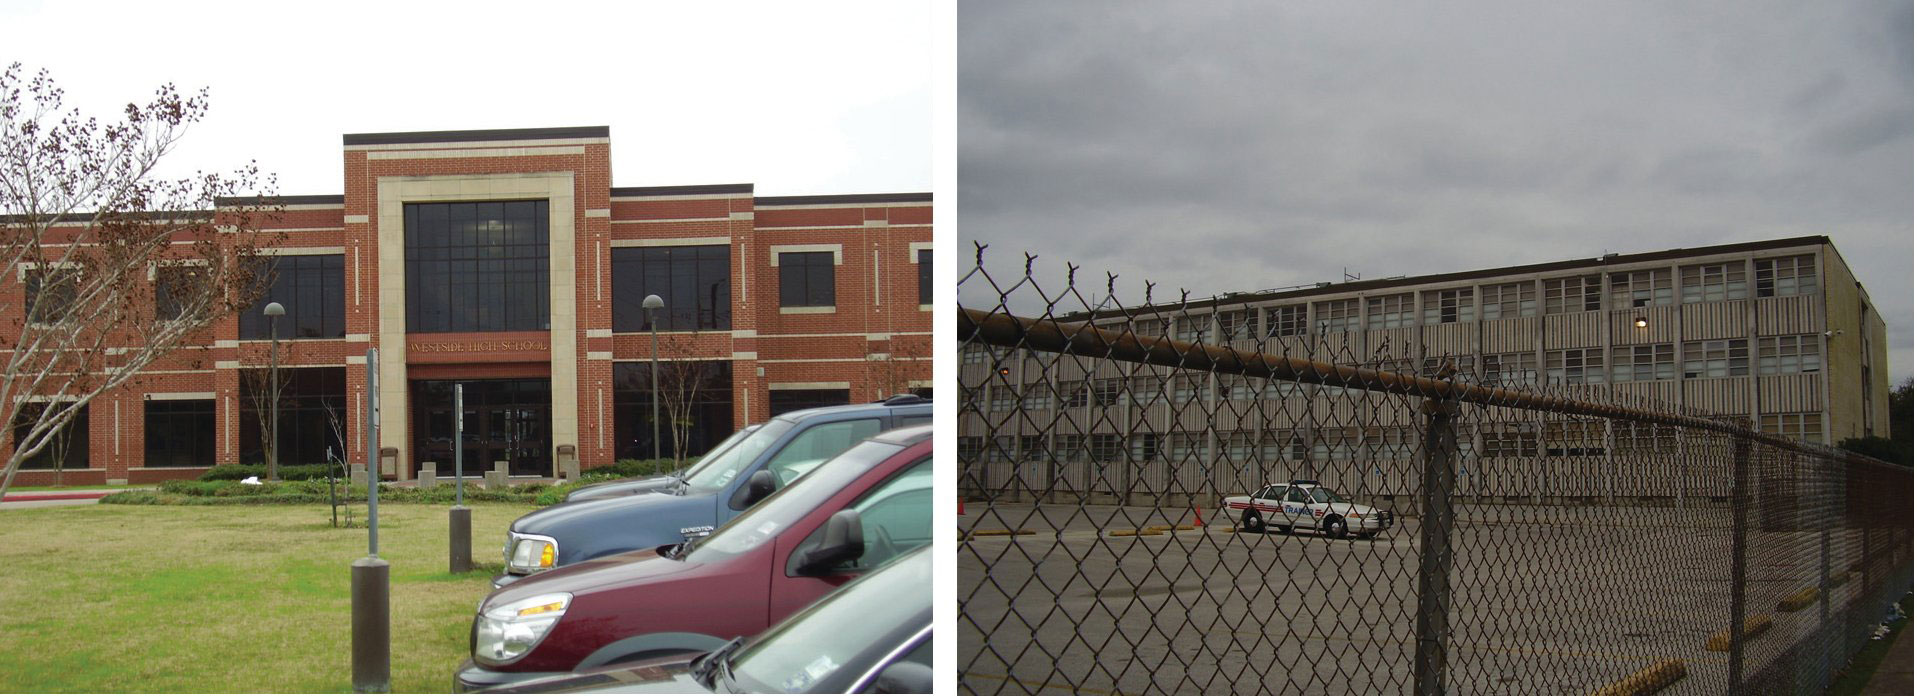 Westside High School in Houston (a very nicely established school) and Lee High School in Houston (surrounded by a fence)